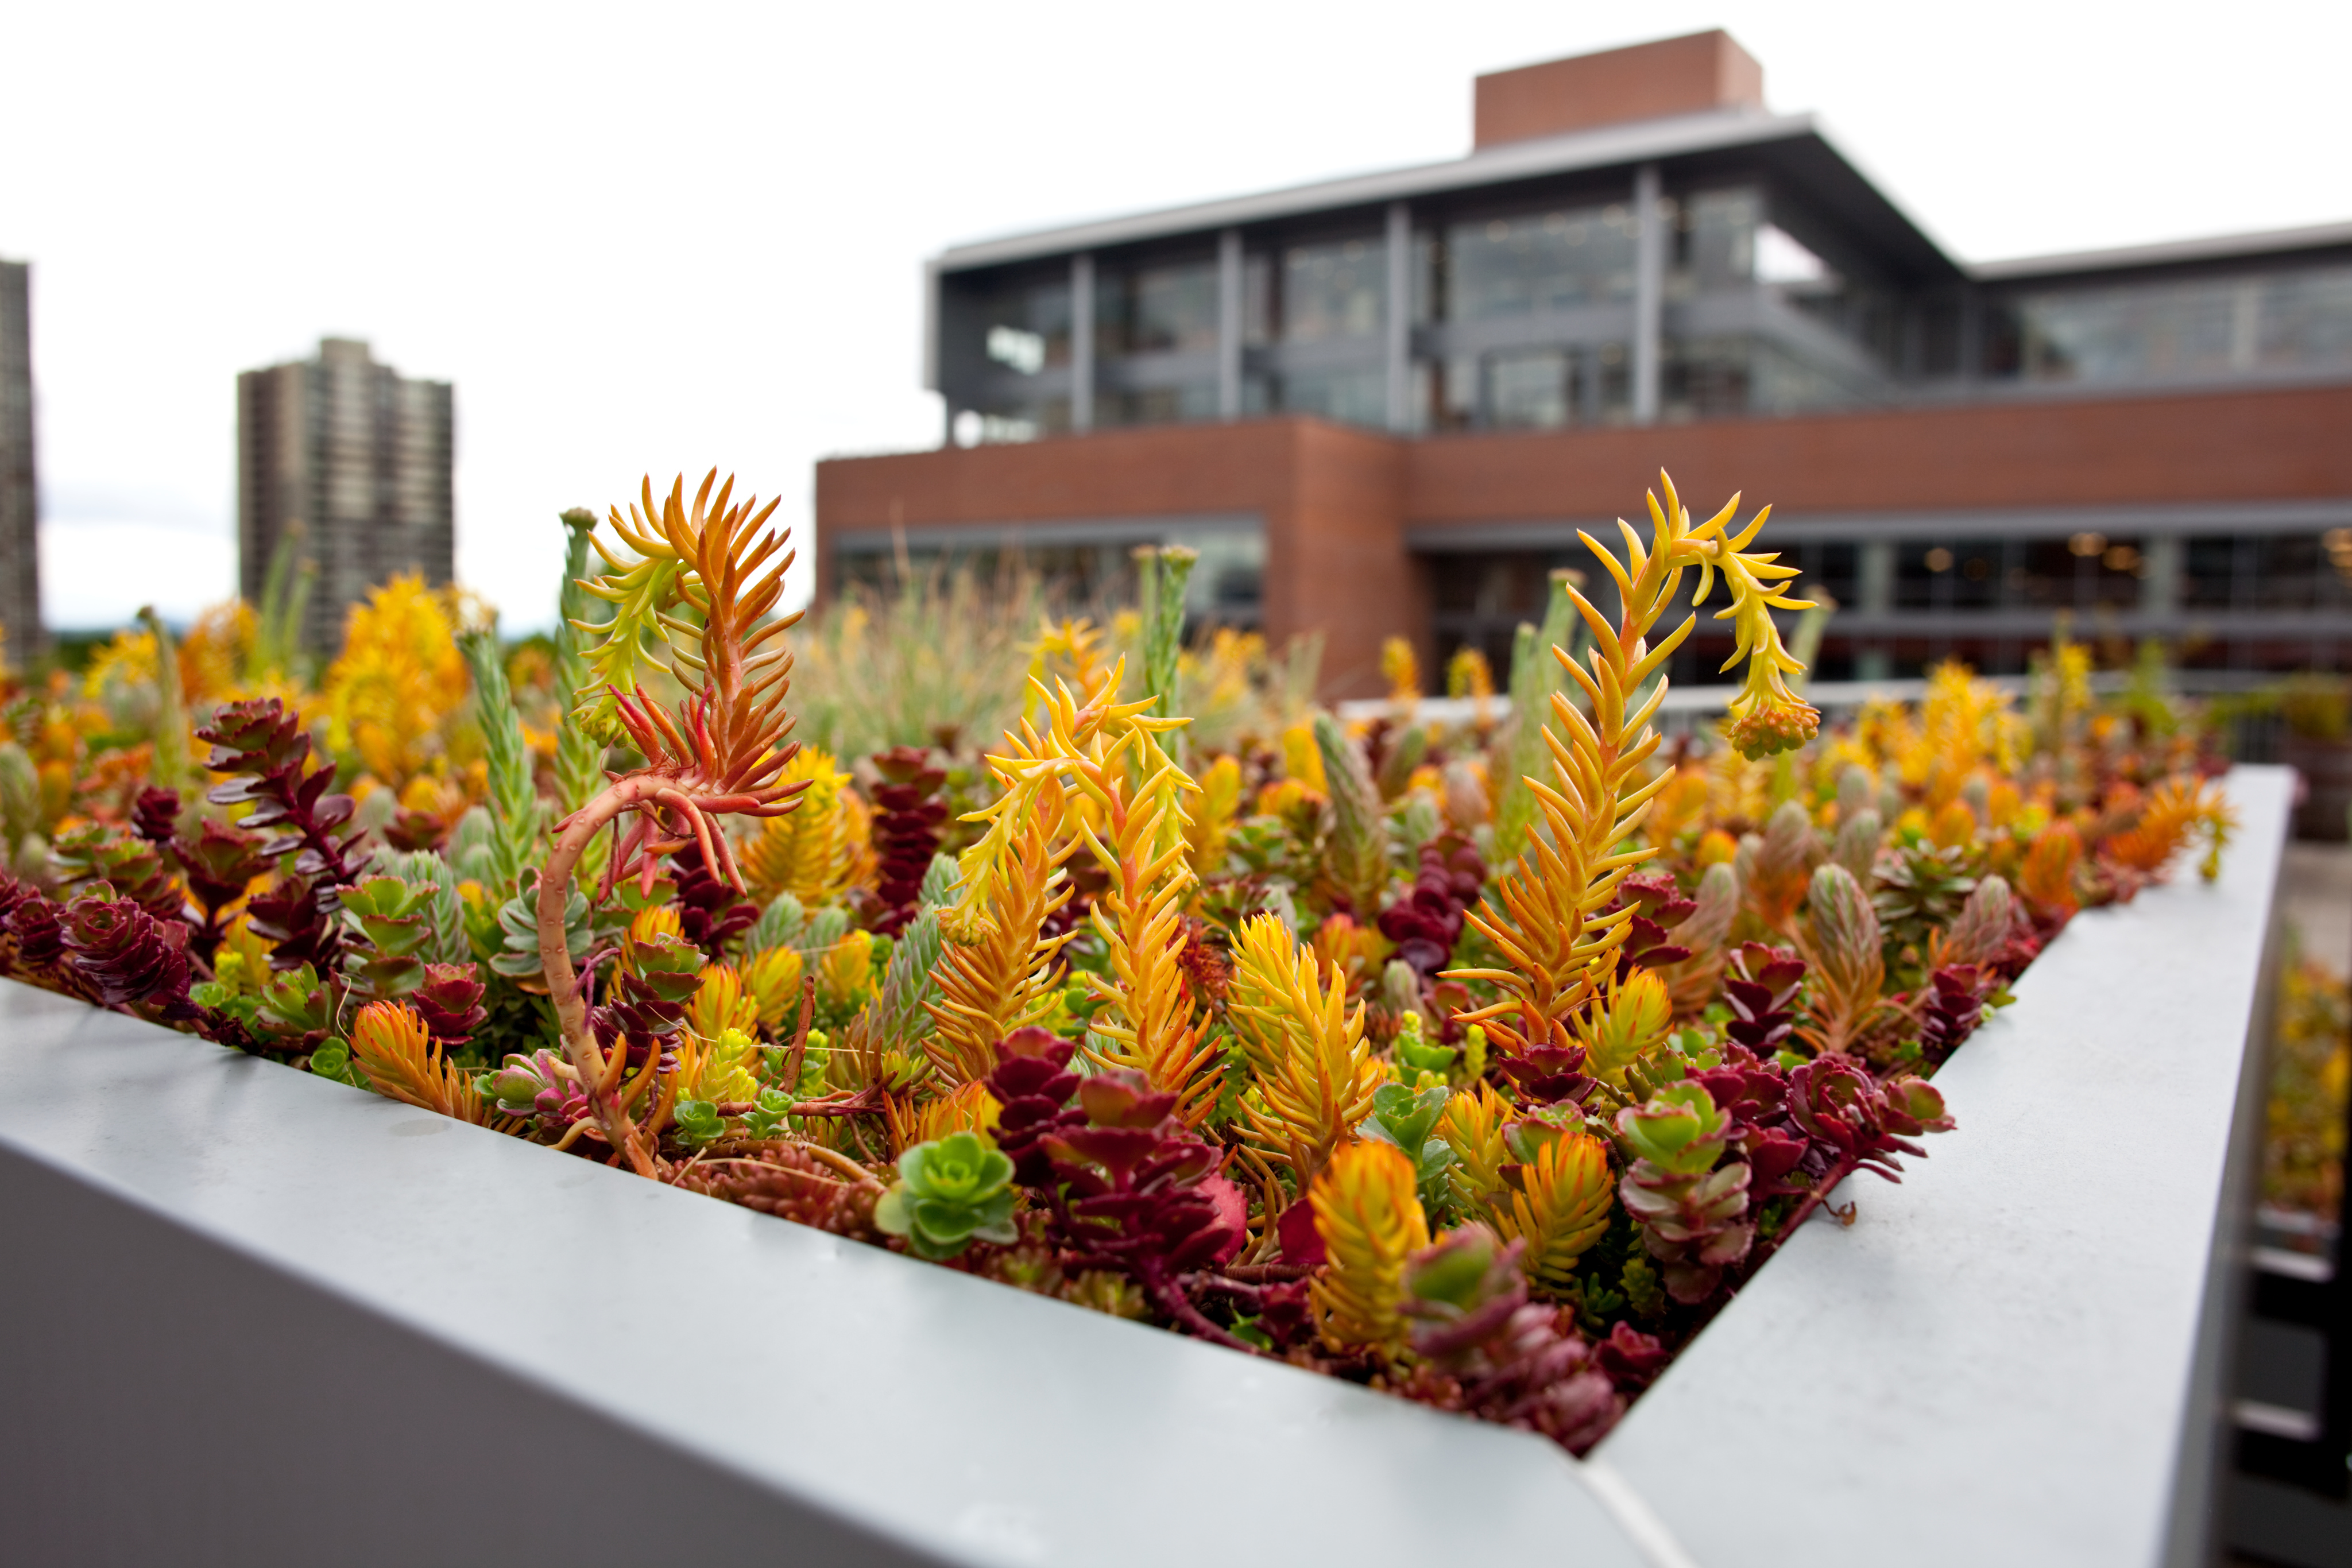 Succulents in Planter on ASRC Rooftop